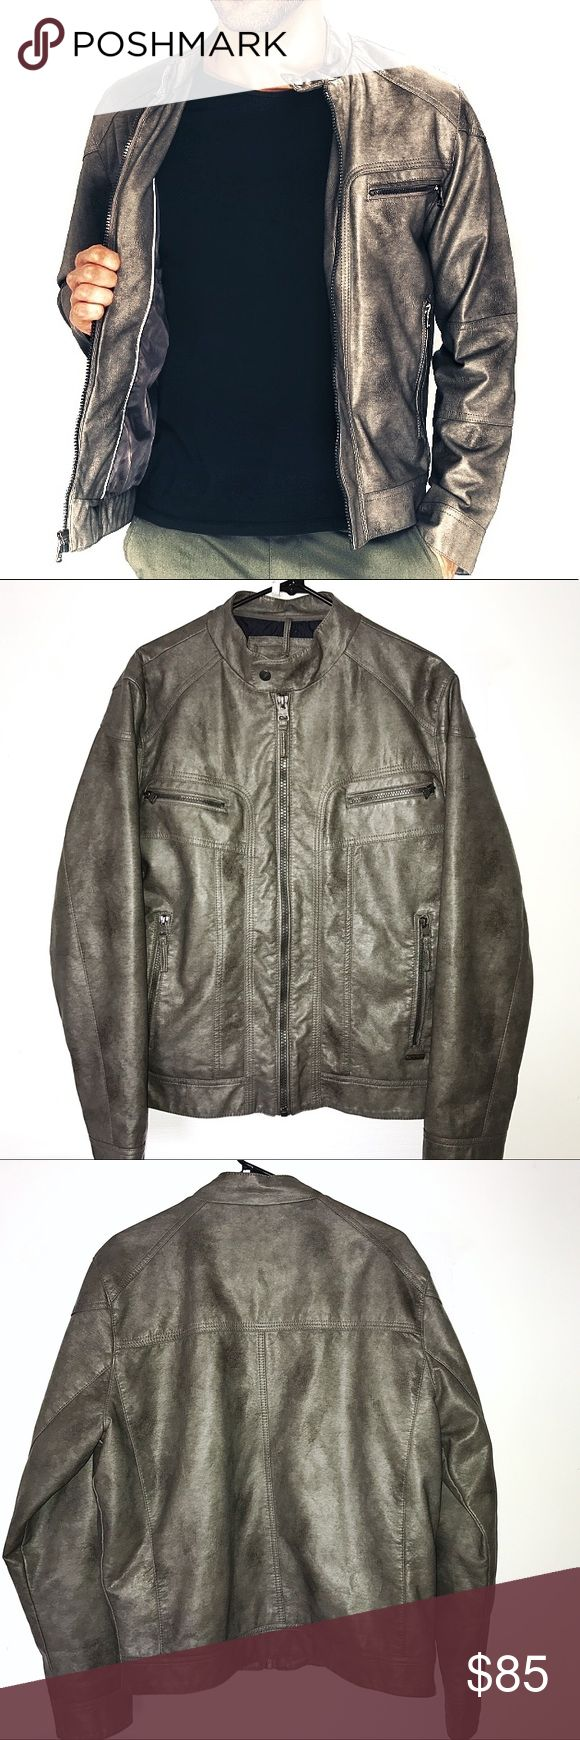 Men's Calvin Klein Moto Jacket Size medium. Brown & golden beige mixed color pallet. Moto style. Full zip front. Snap neck strap closure. (4) zipper pockets on the front. Quilted inner lining. Materials; face- 100% polyurethane. Backing- 100% viscose. Knit- polyester / cotton. Lining- 100% polyester. Filler- 100% polyester. Classic jacket for your wardrobe. Excellent condition, no outer flaws. Calvin Klein Jackets & Coats Bomber & Varsity